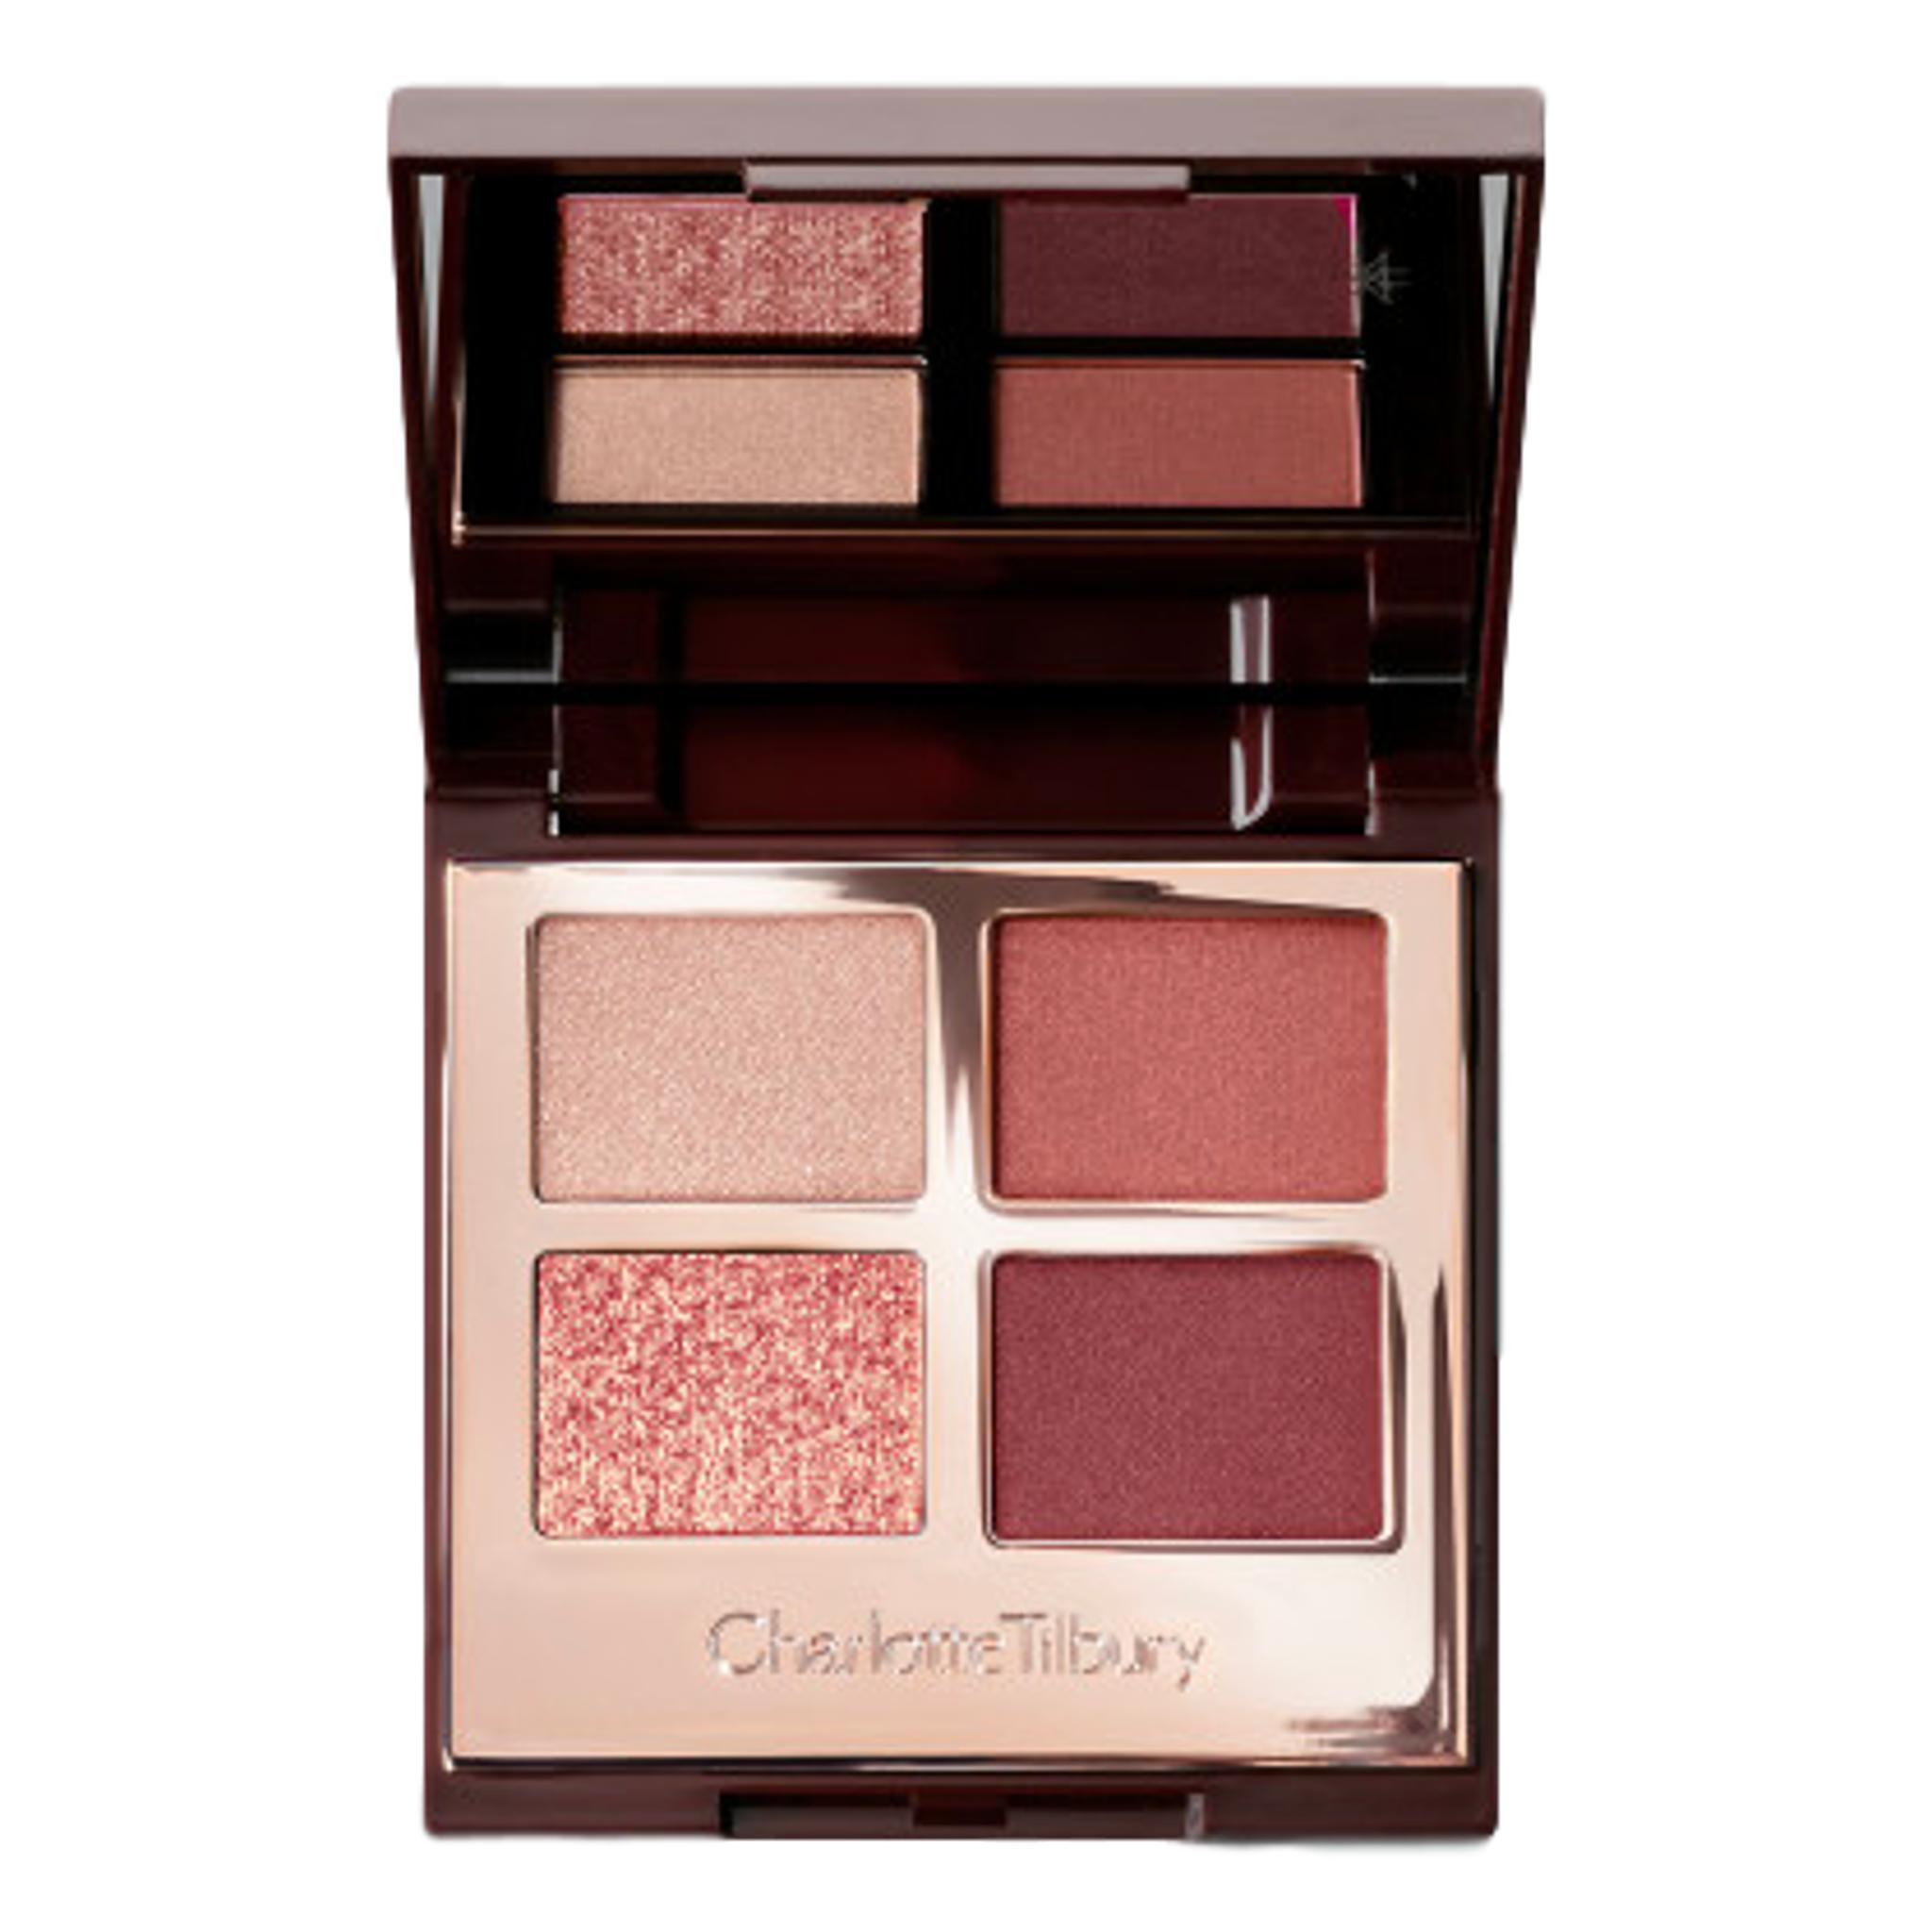 Charlotte Tilbury Luxury Eyeshadow Palette - Walk Of No Shame, eyeshadow palette, London Loves Beauty